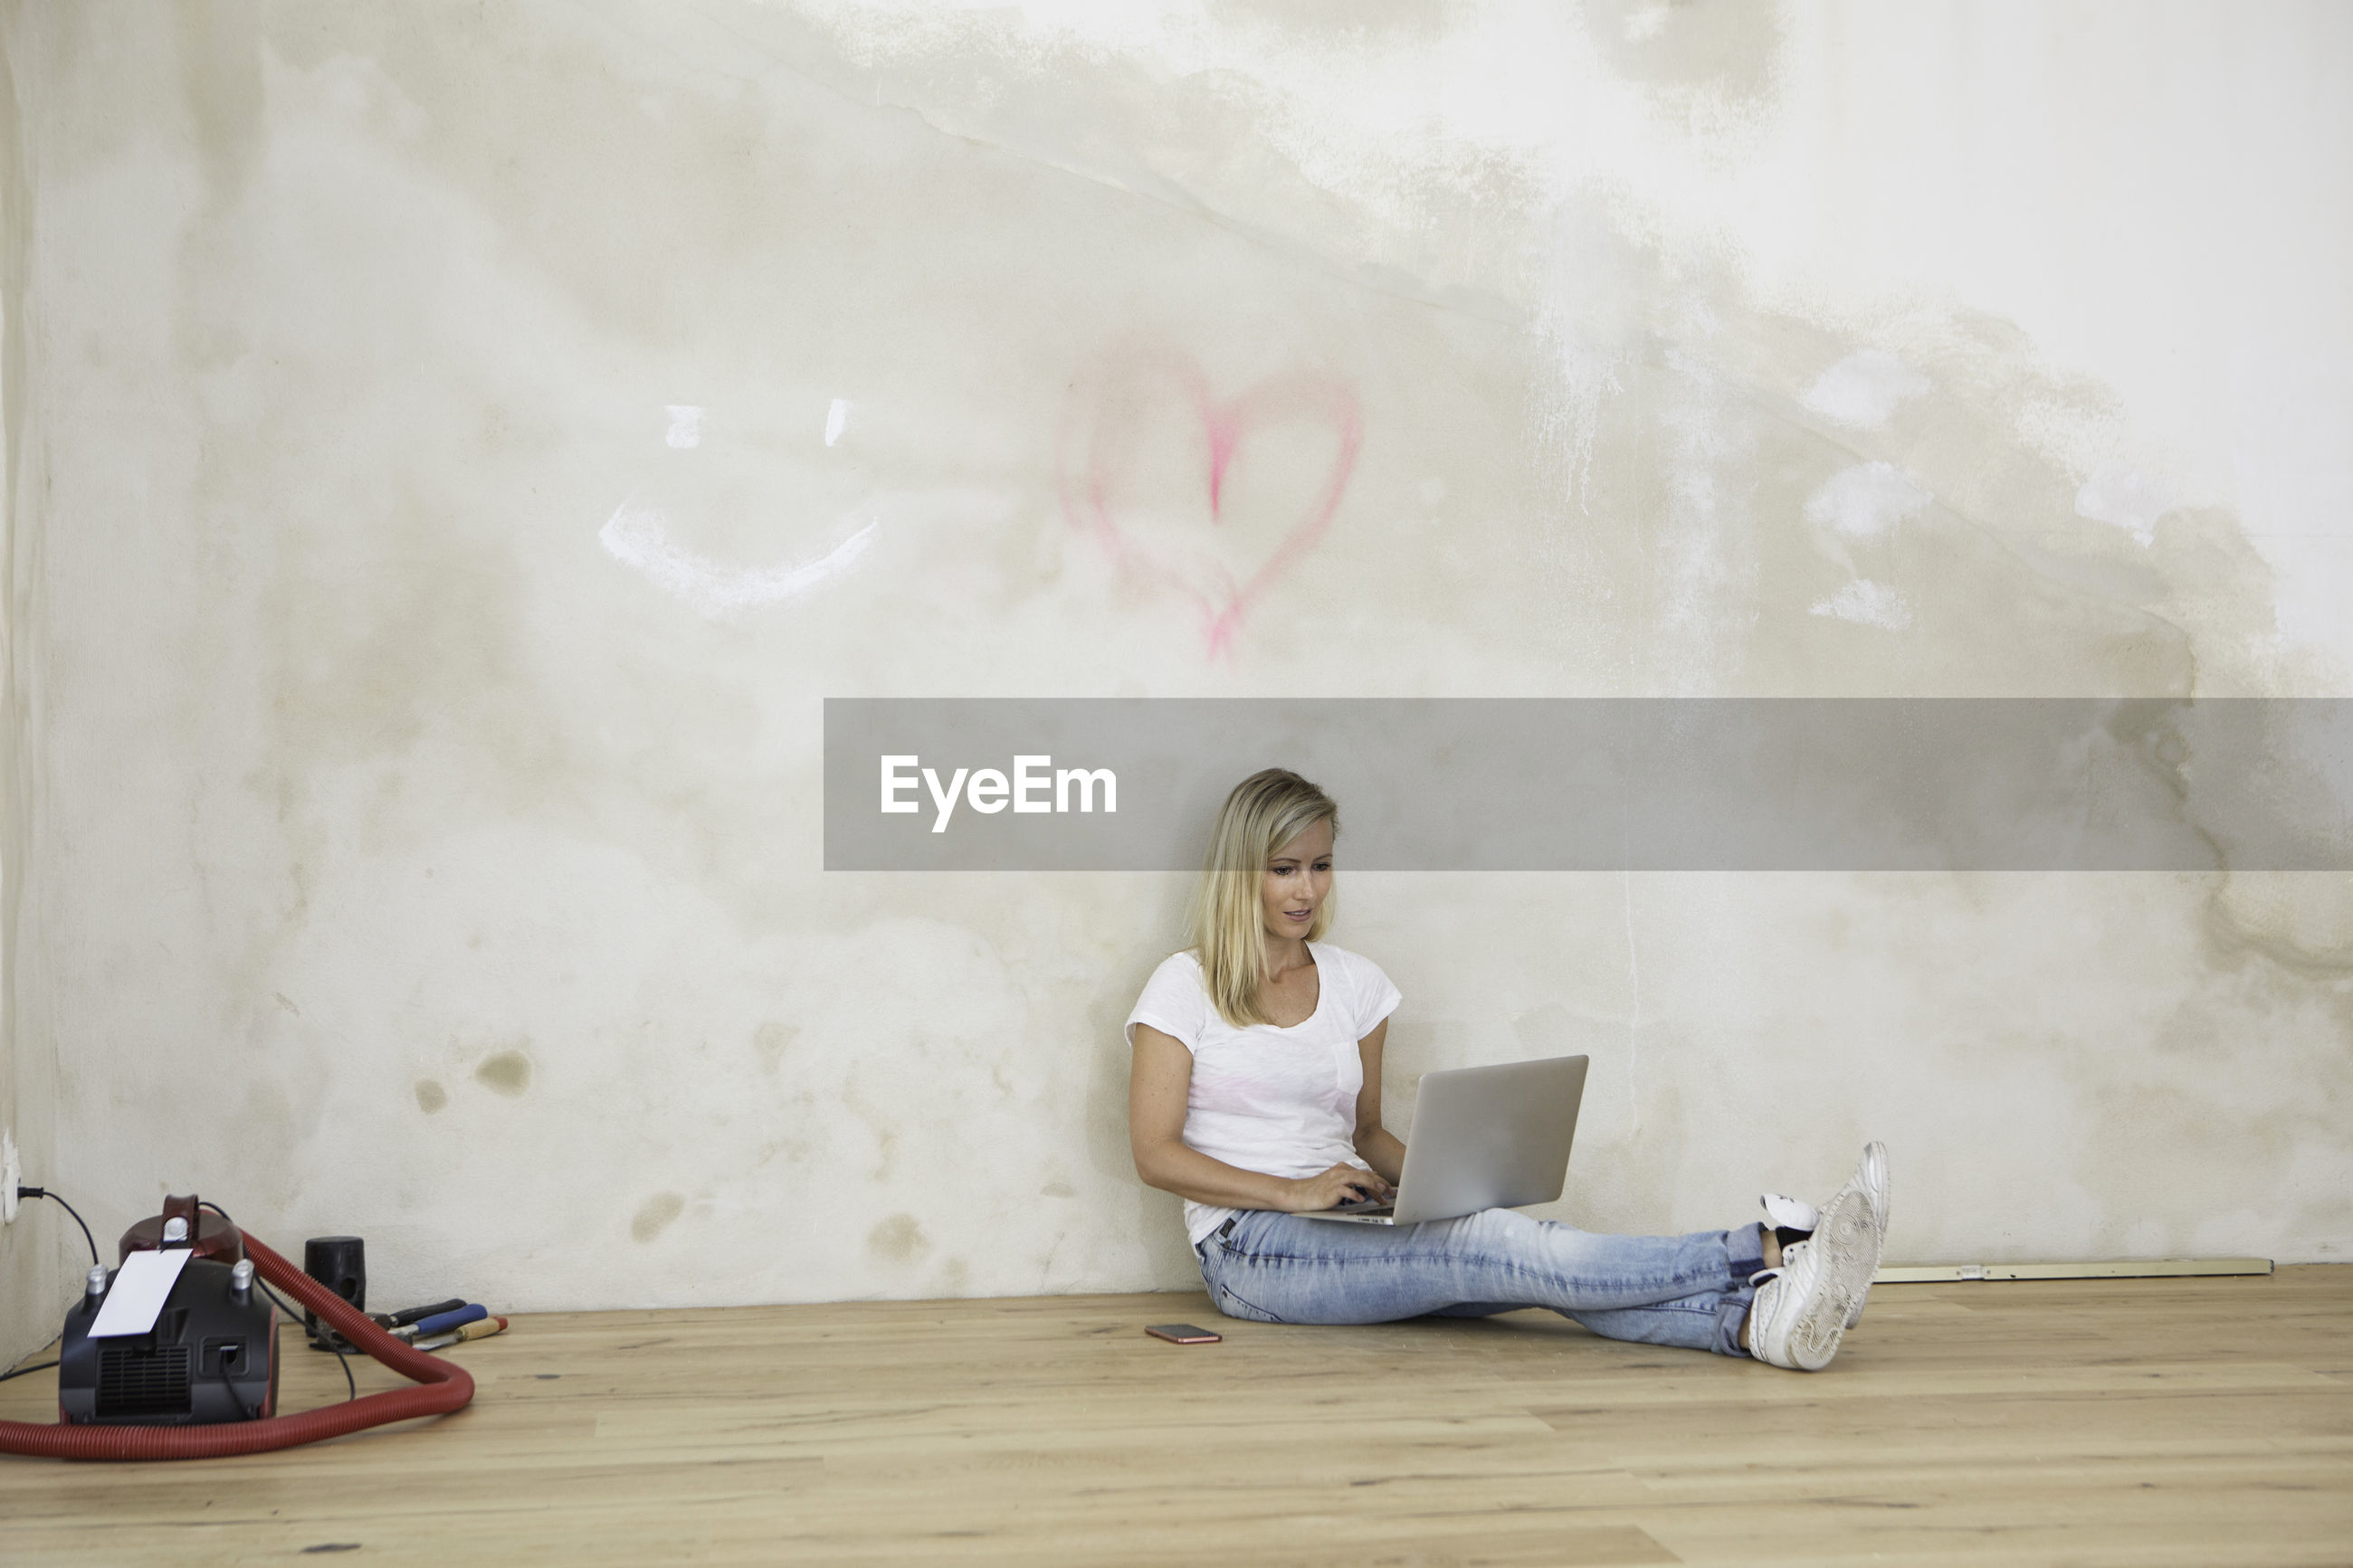 Close-up of young woman sitting on floor using laptop in empty room